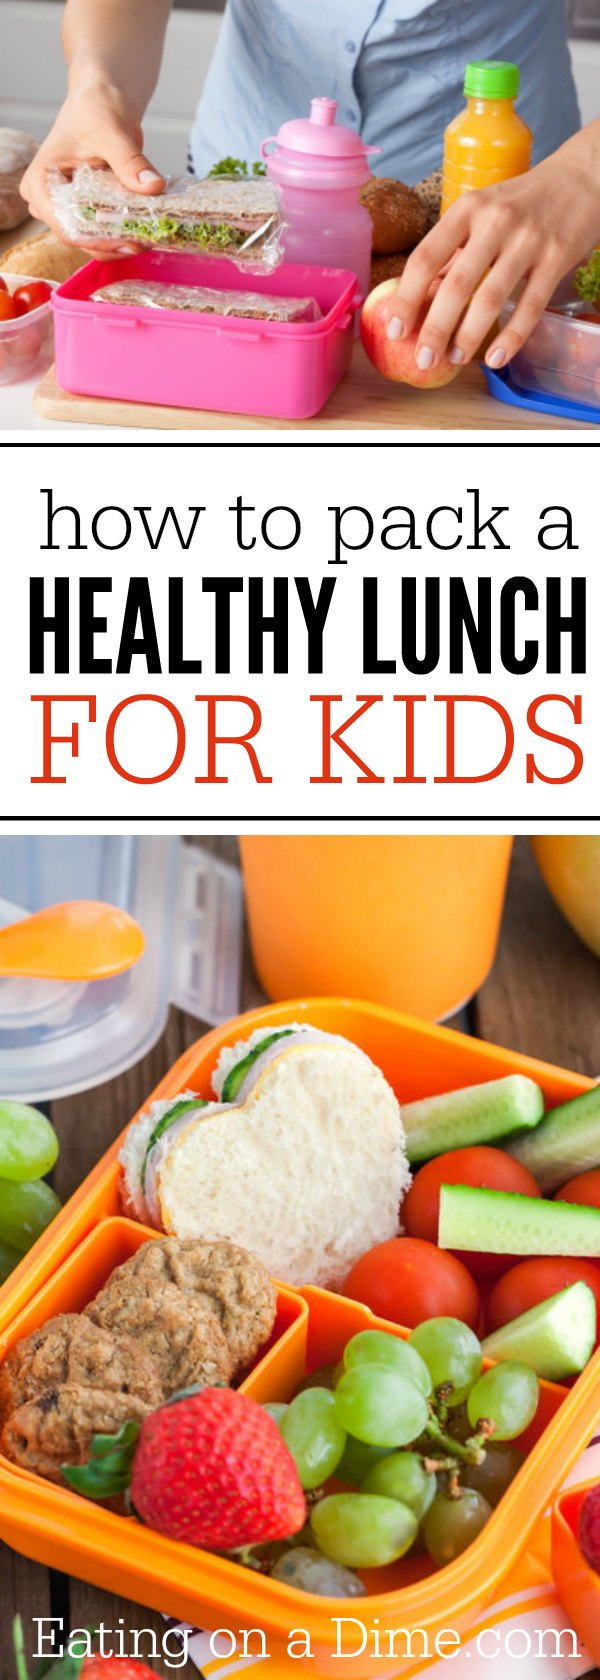 Every mom or dad who makes lunches for kids knows the goals: avoid total jettisoning of lunch into trash by picky eater; hope she or he doesn't trade healthy apple for can of soda; nudge the menu past the old standbys before complete boredom sets in on Day (kids need lunches, on average, times a .